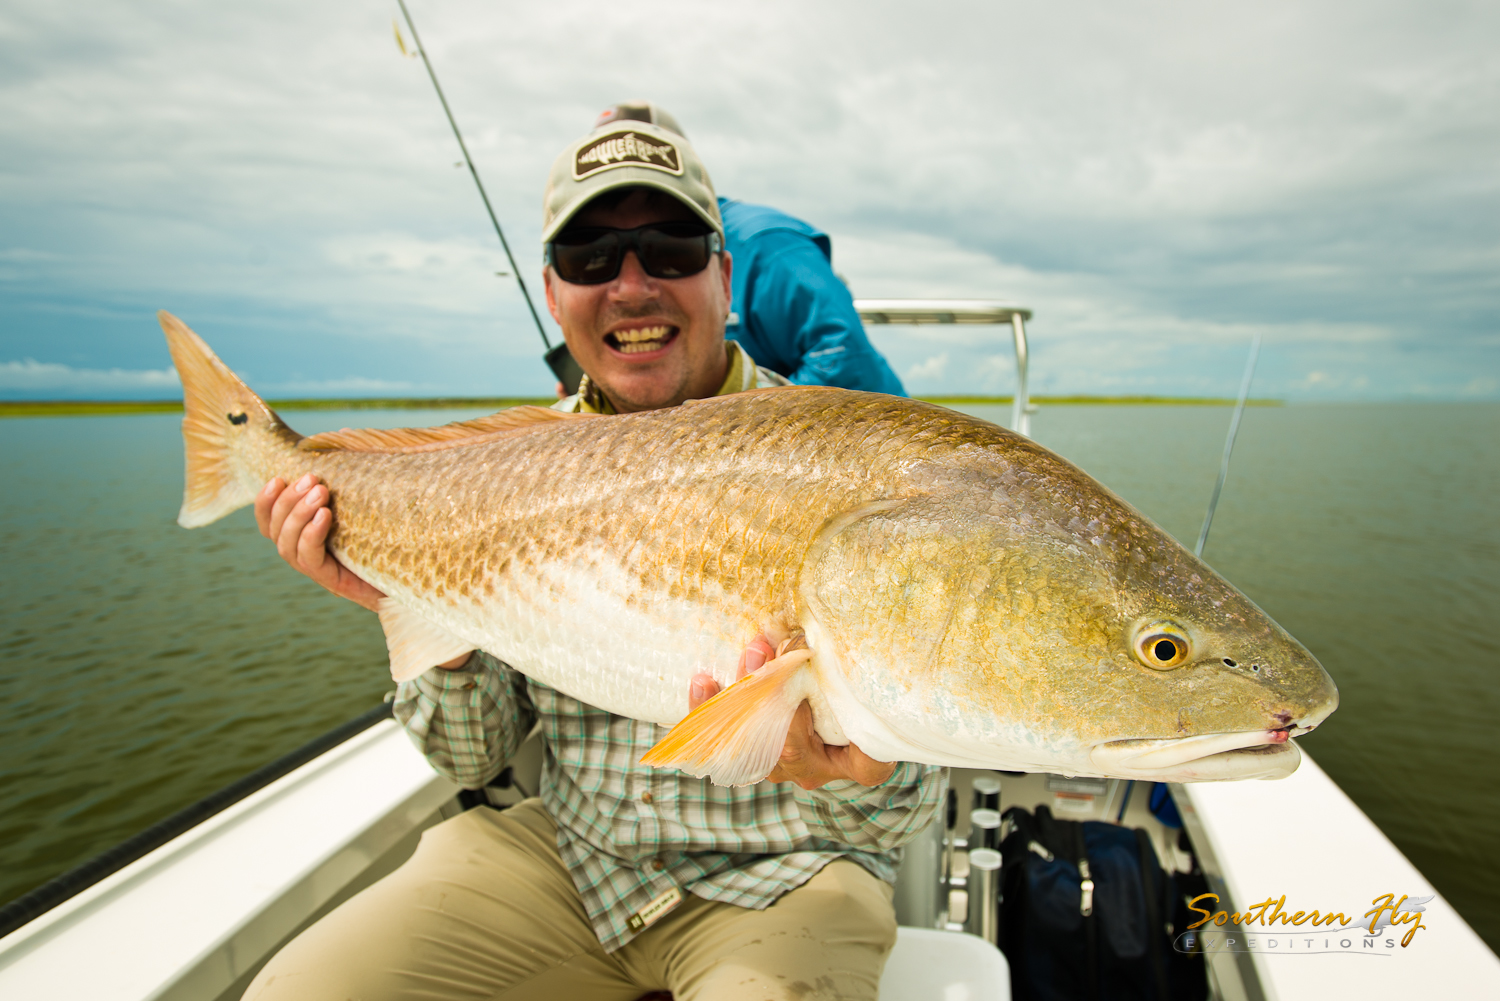 Fly Fishing Redfish Louisiana with Southern Fly Expeditions and Captain Brandon Keck